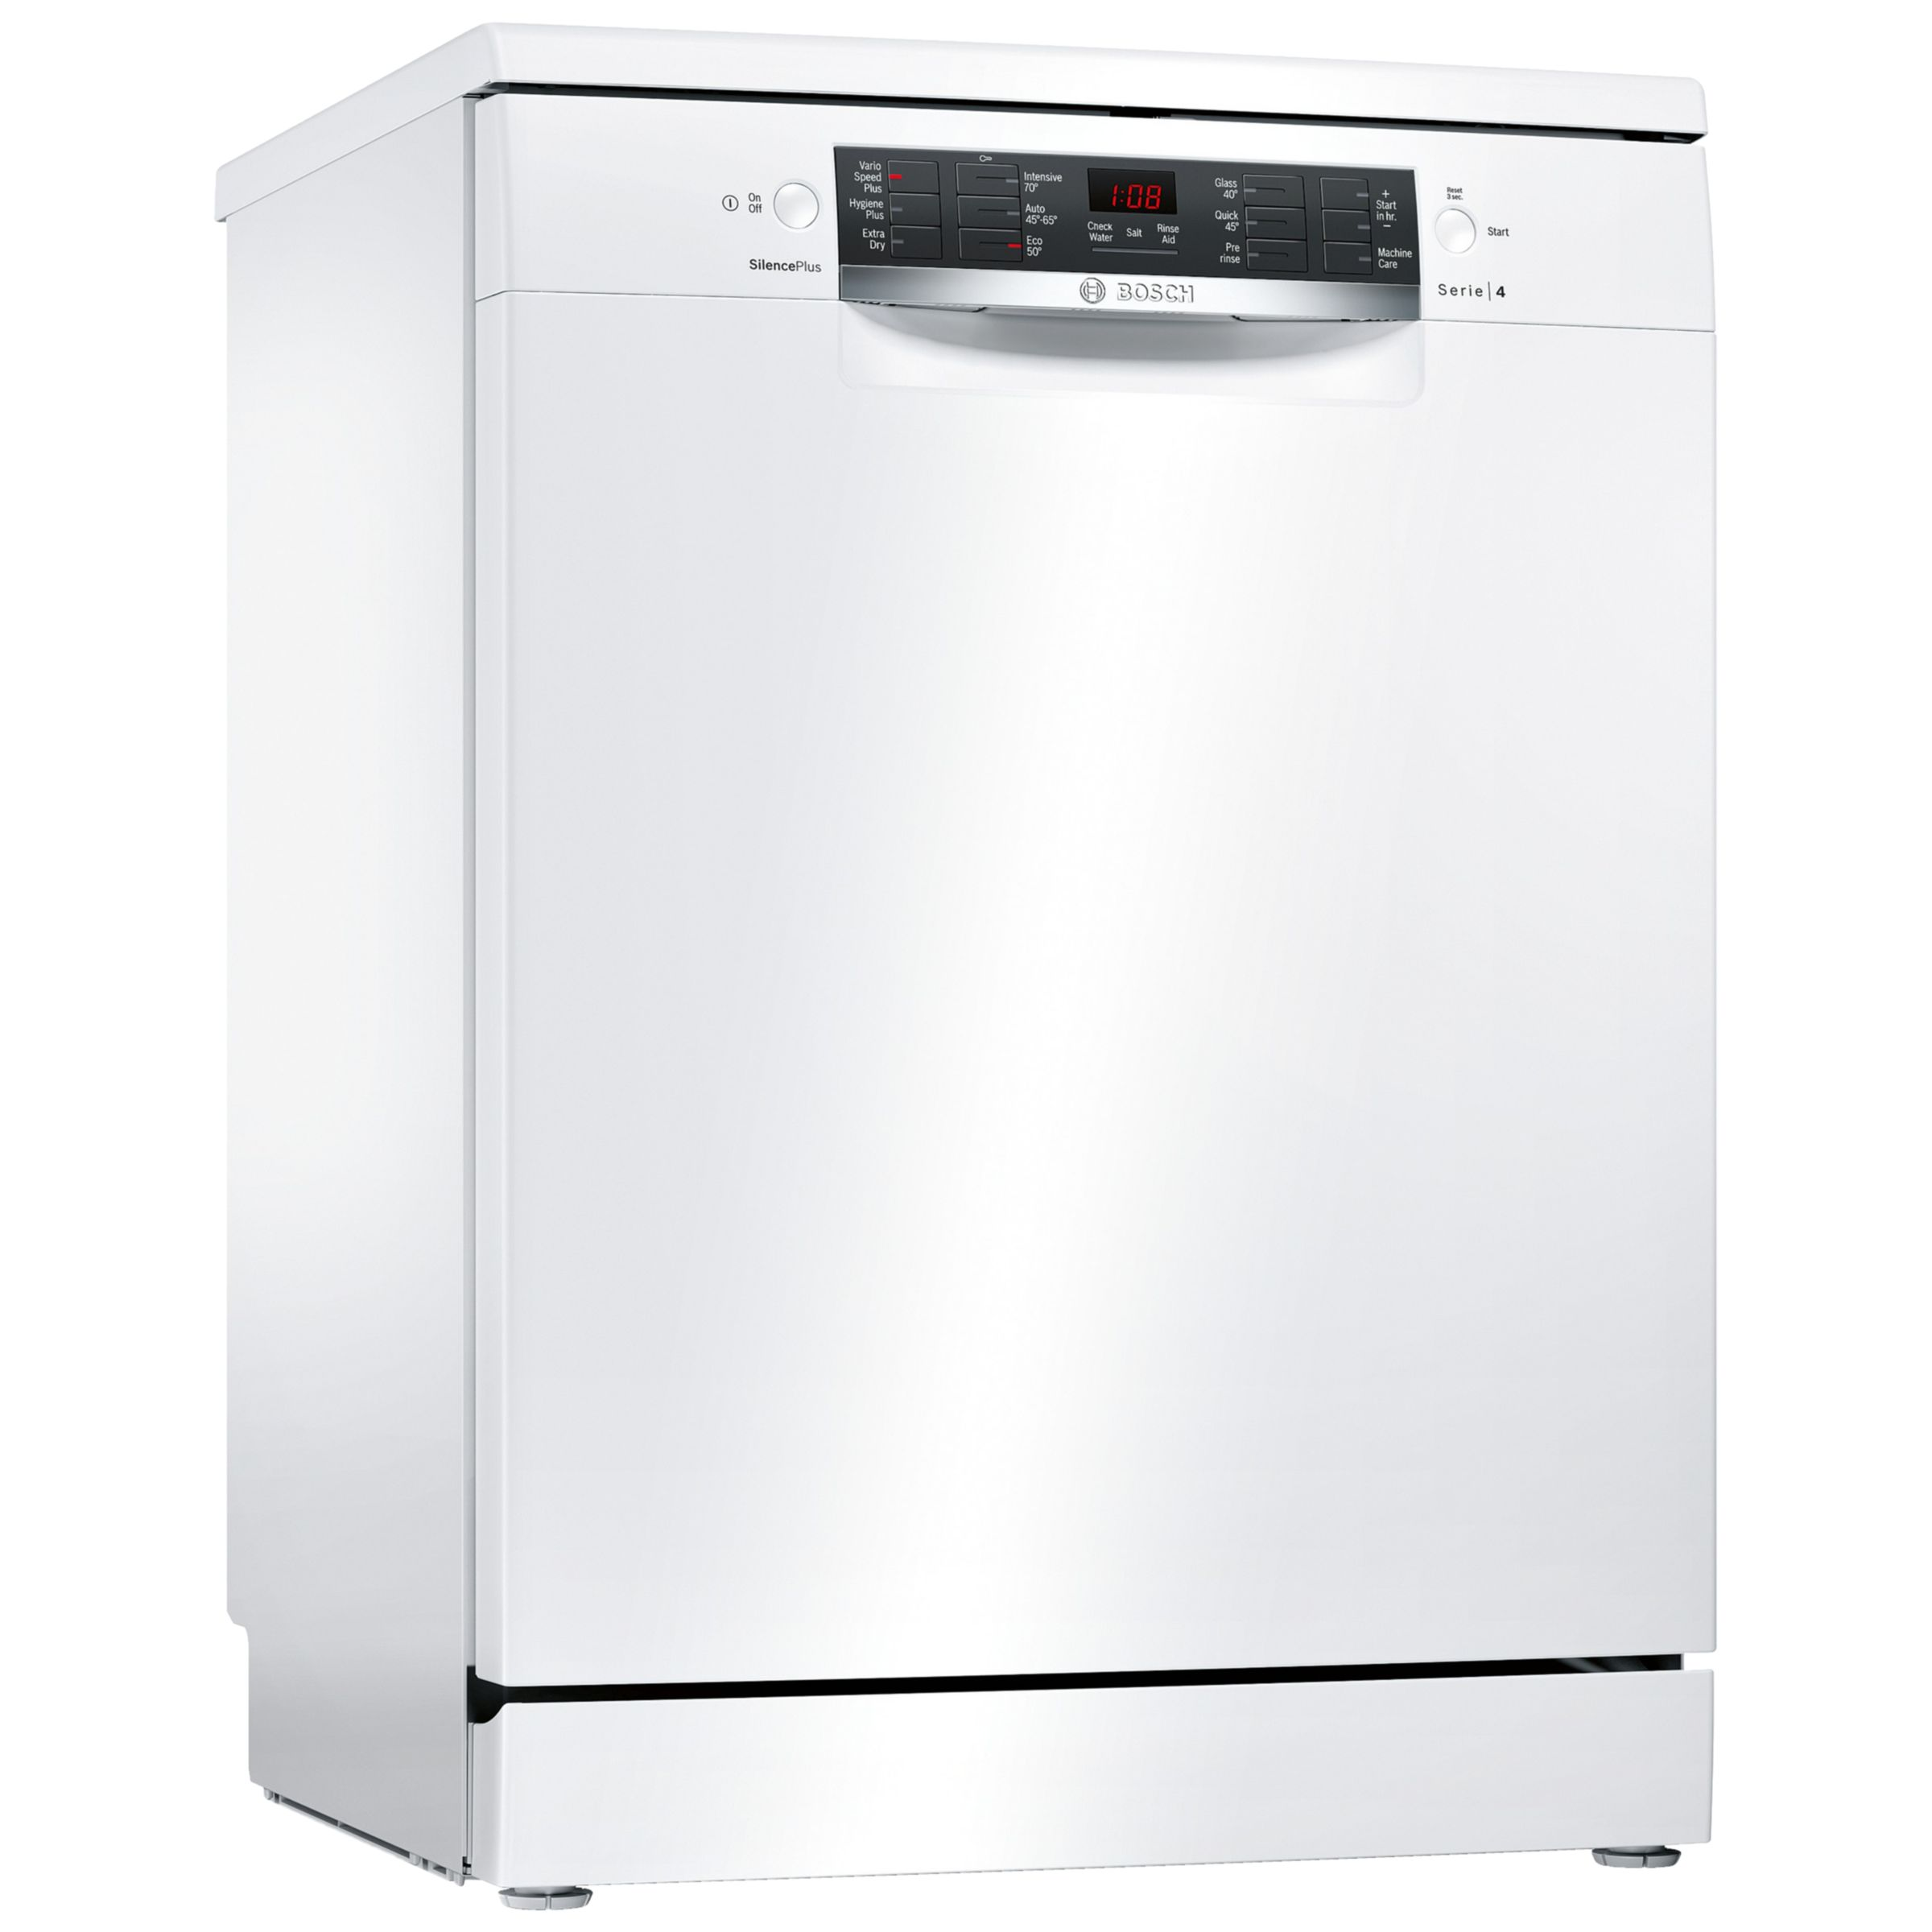 bosch sms46iw02g freestanding dishwasher white octer. Black Bedroom Furniture Sets. Home Design Ideas